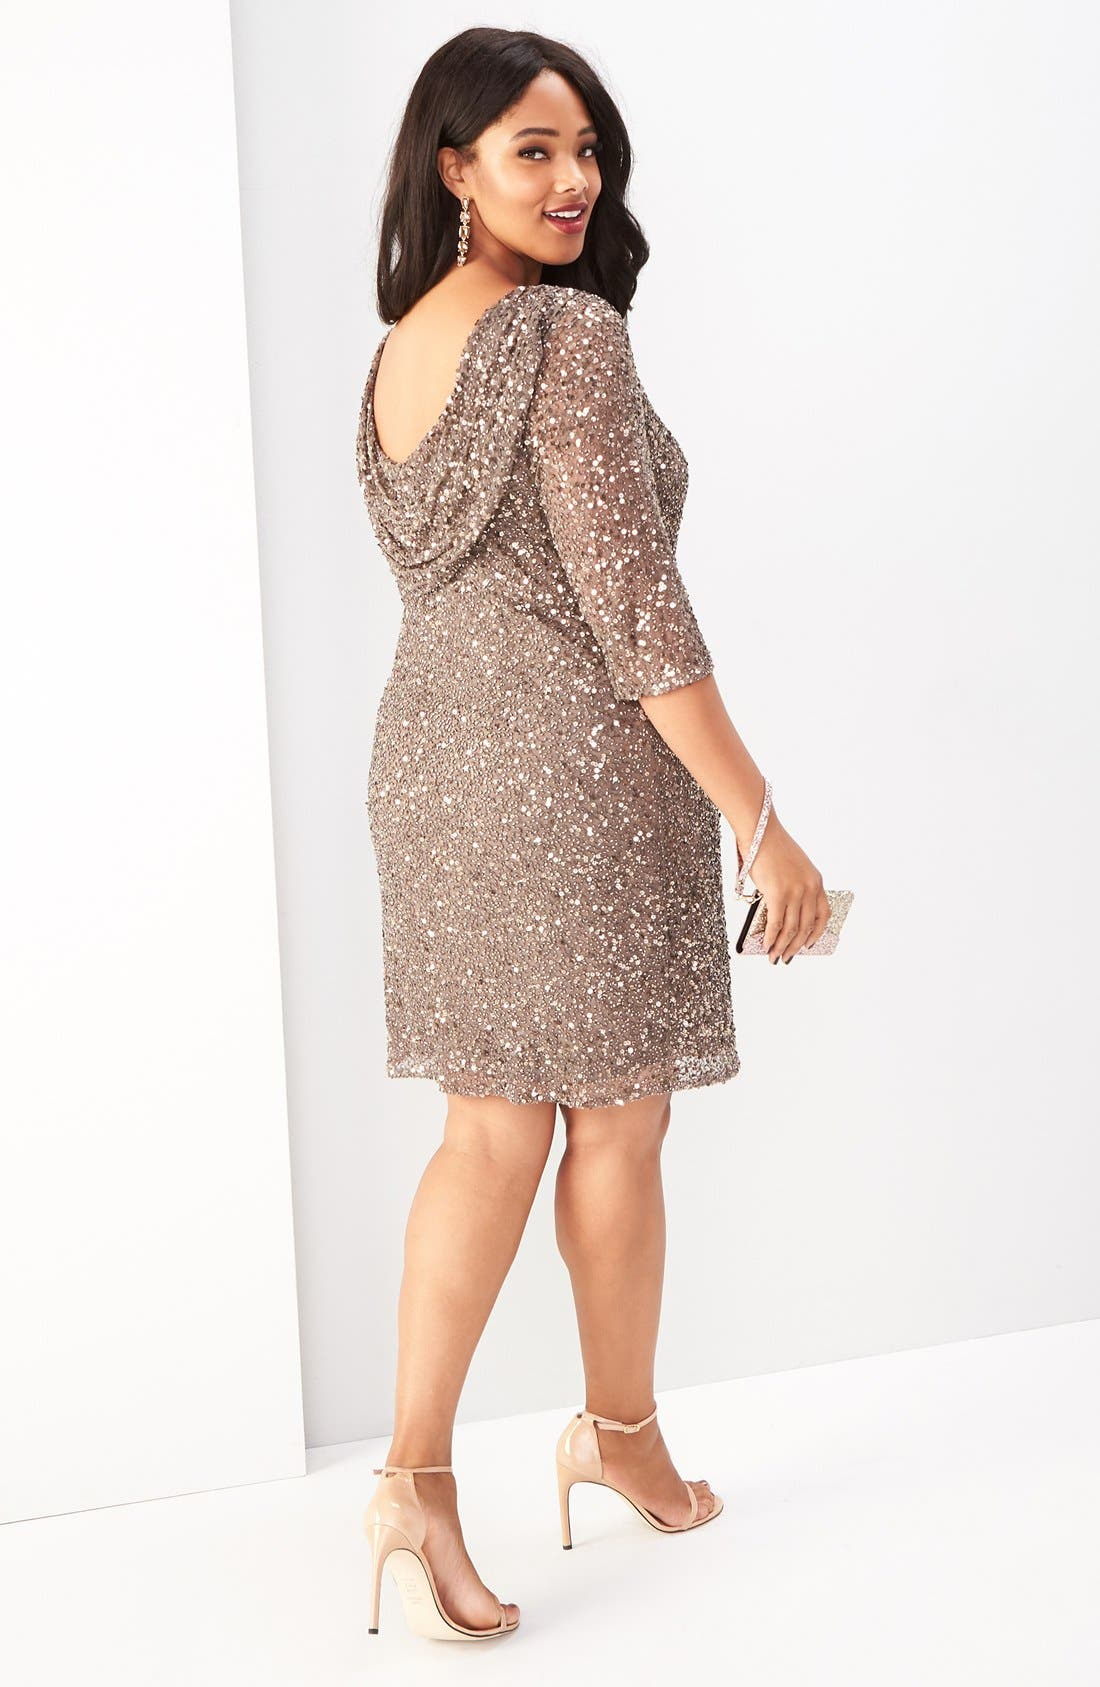 Pisarro Nights Dress with Accessories (Plus Size)